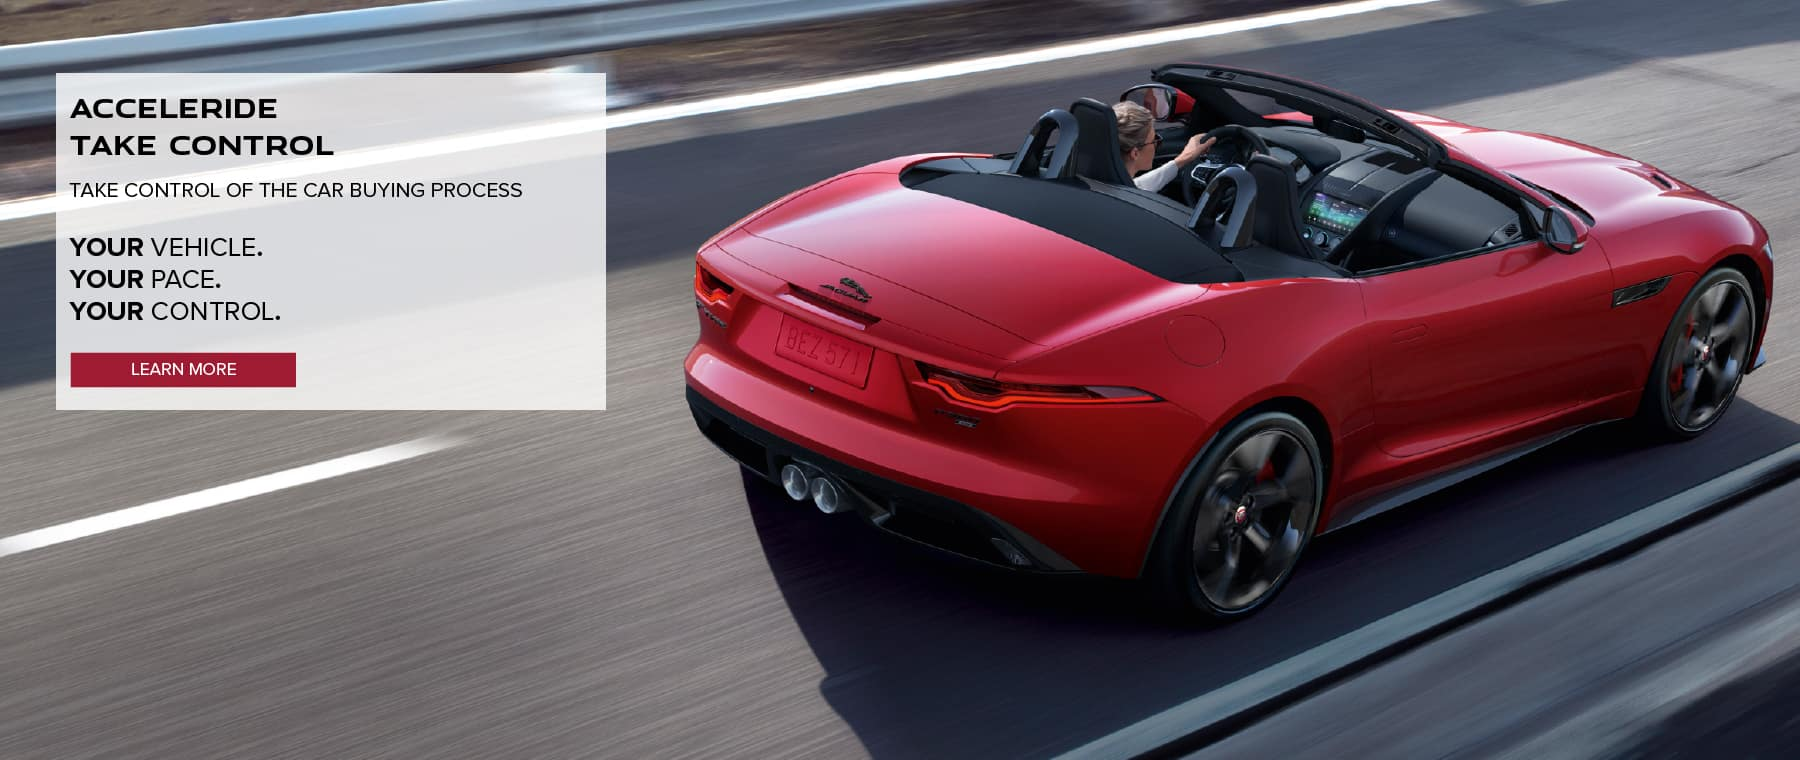 ACCELERIDE. TAKE CONTROL. TAKE CONTROL OF THE CAR BUYING PROCESS. YOUR VEHICLE. YOUR PACE. YOUR CONTROL. LEARN MORE. RED JAGUAR F-TYPE DRIVING DOWN ROAD IN CITY.